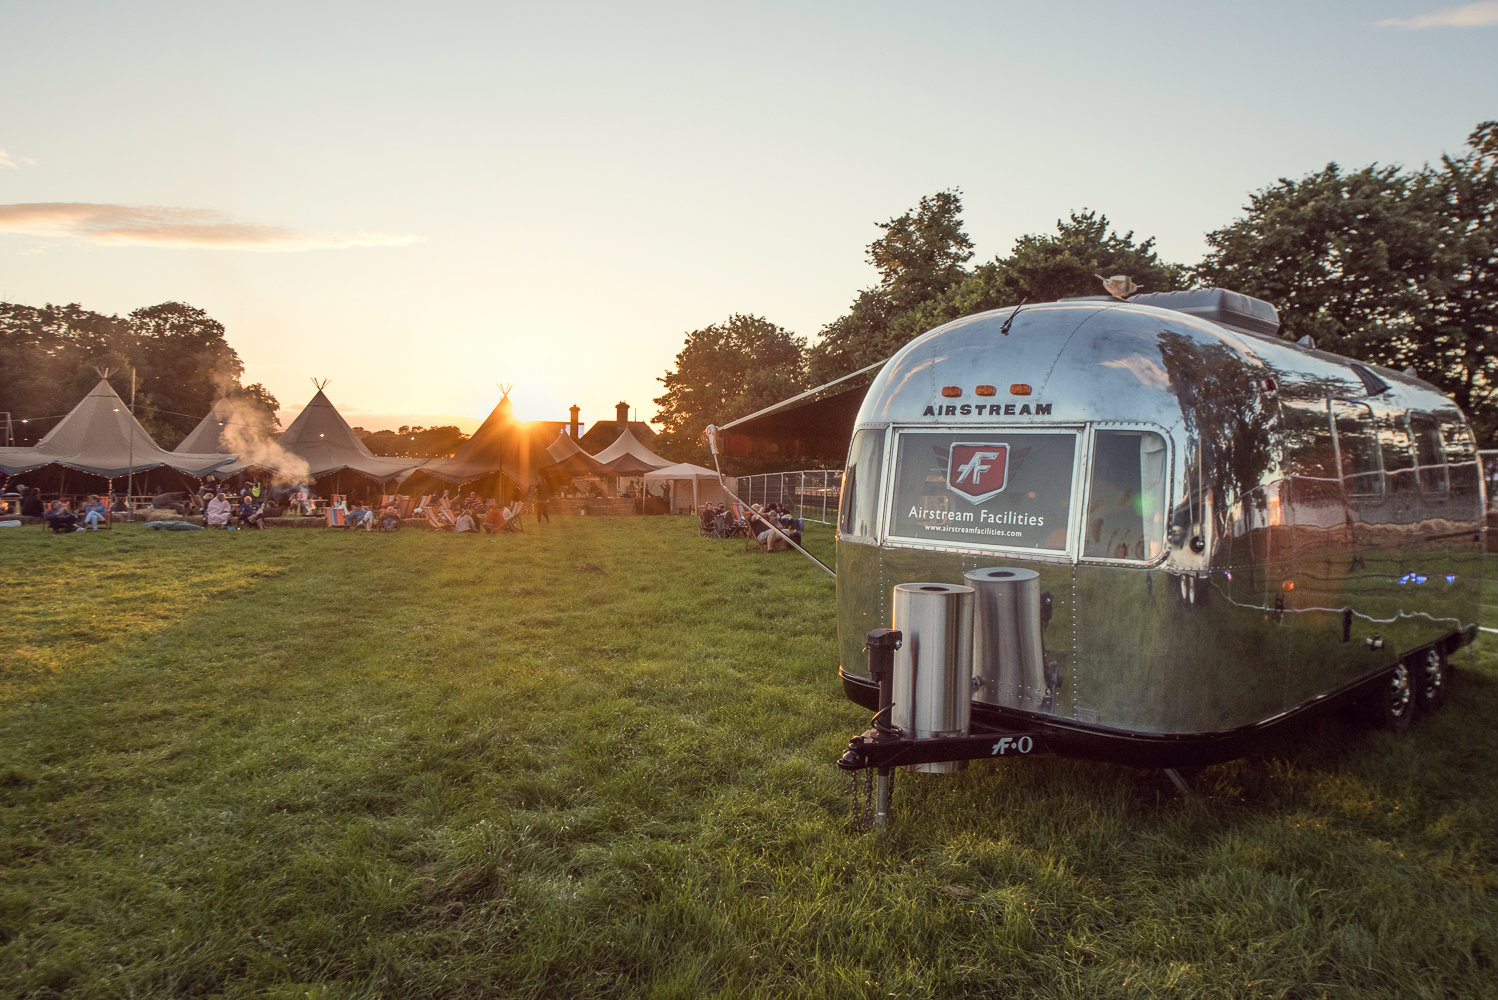 Copy of Hotel Bell Tent Accommodation Airstream Trailer Exterior